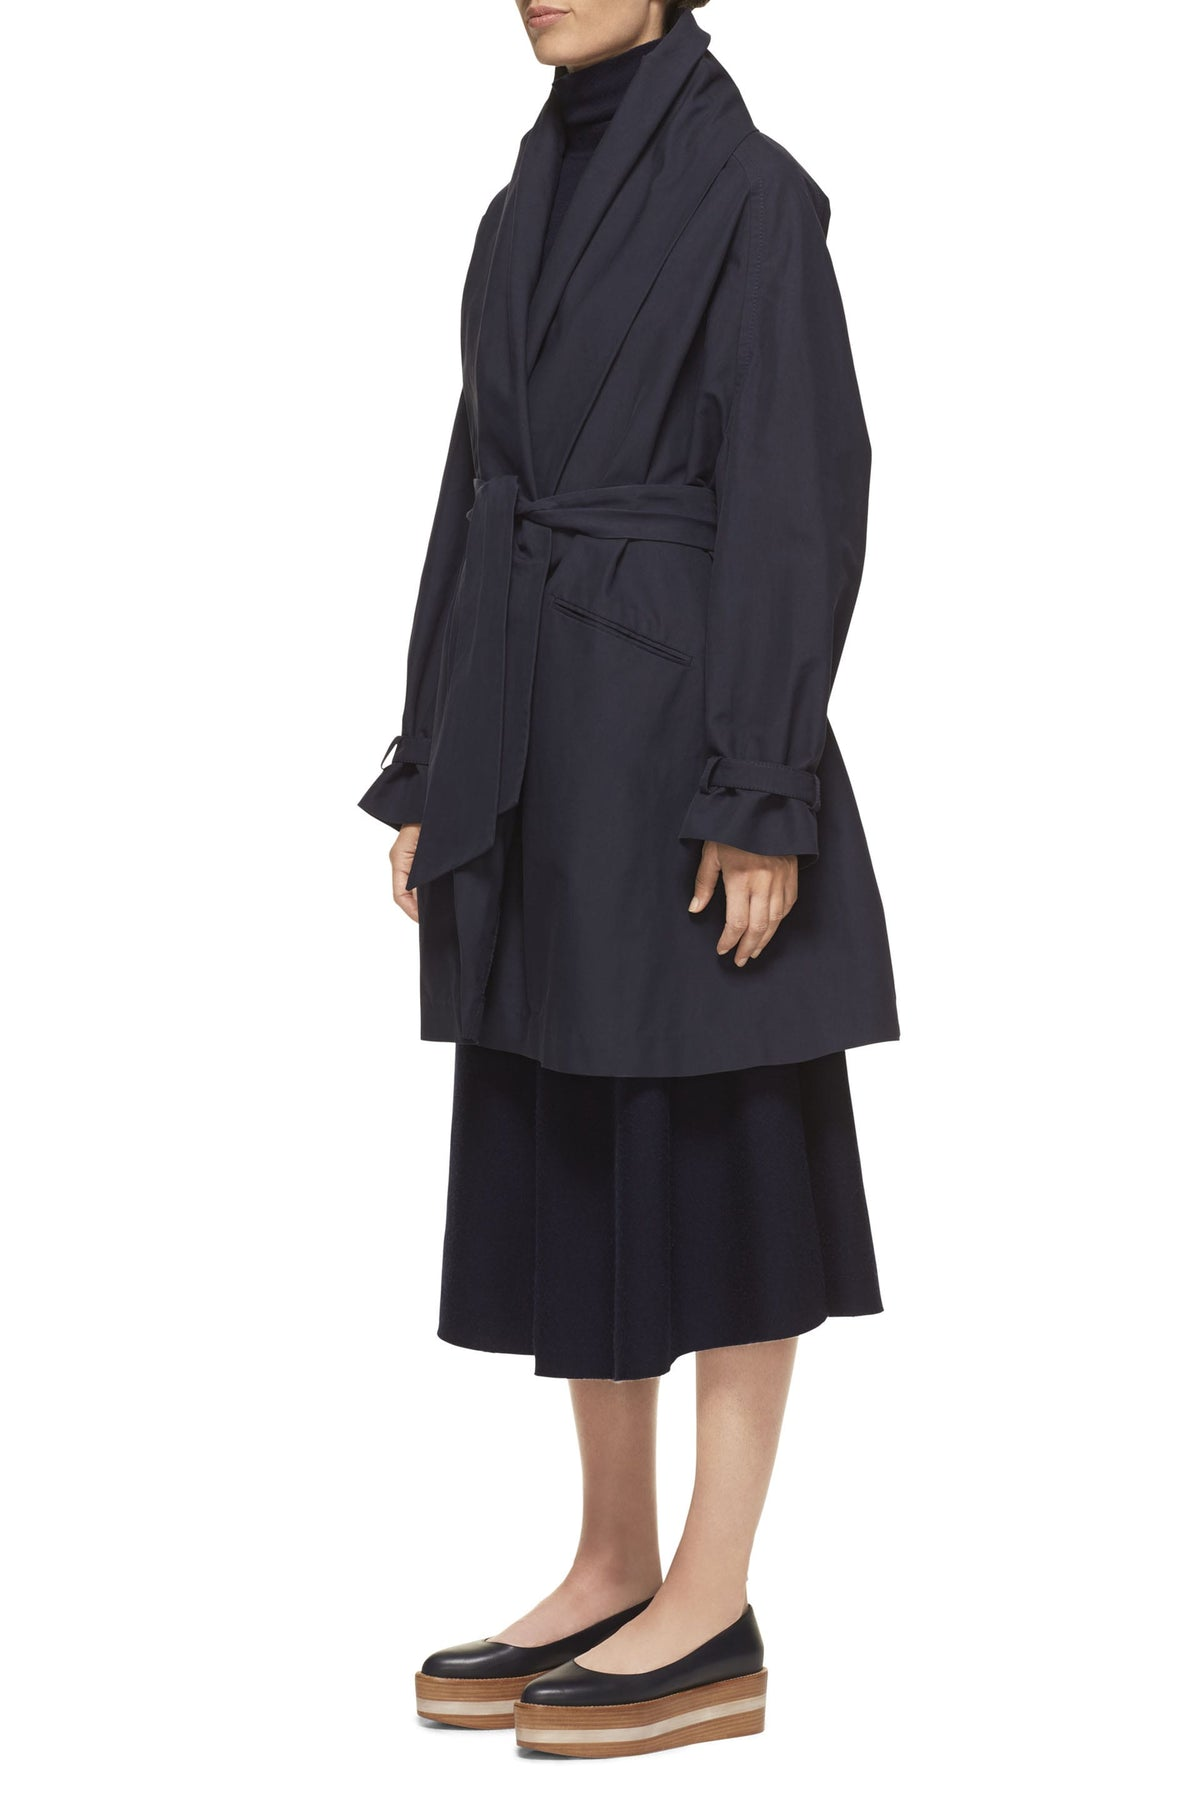 Audley Draped Jacket